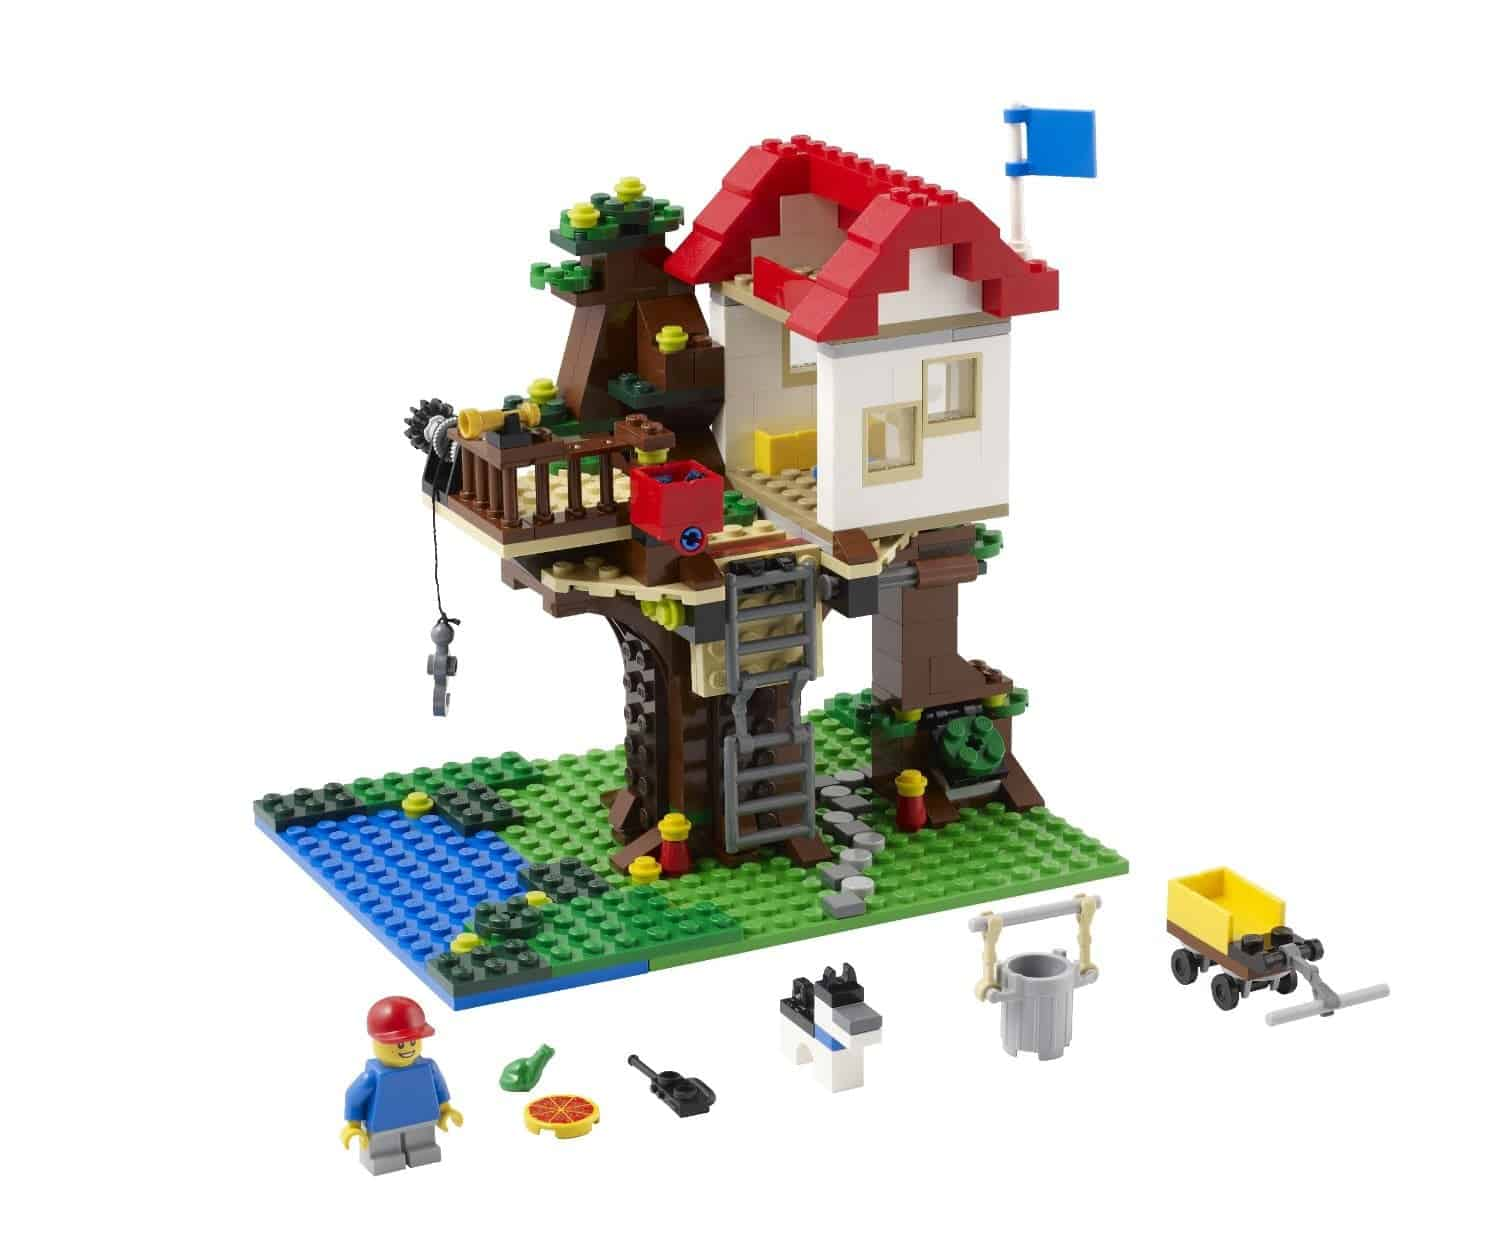 Lego Gift Ideas by Age - Toddler to Twelve Years: Treehouse | www.thepinningmama.com